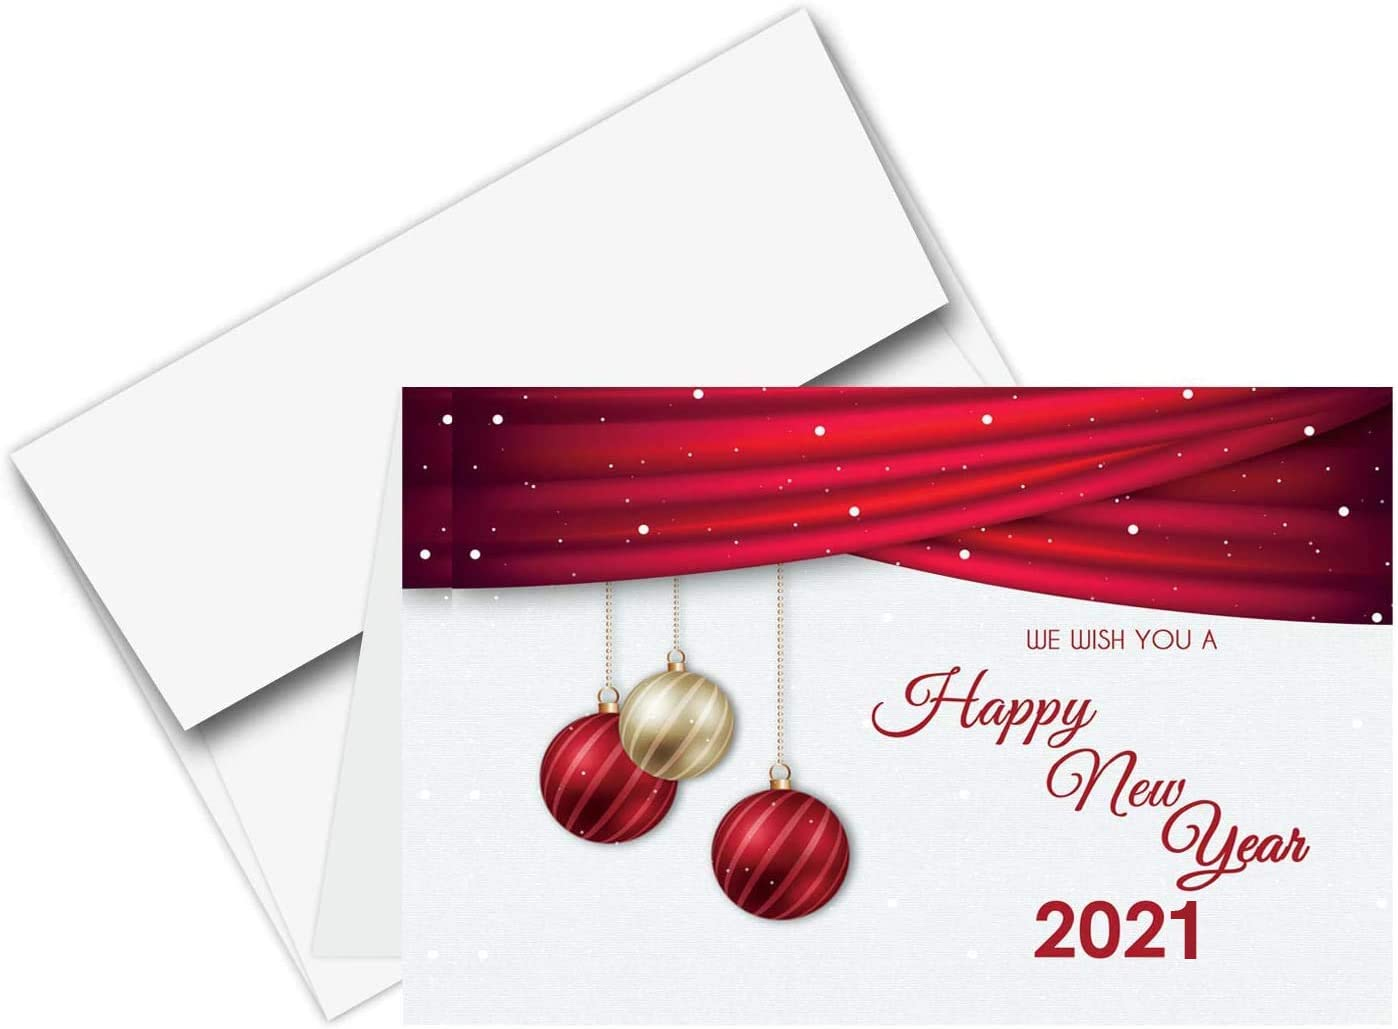 Unique Photo Christmas Cards 2021 Amazon Com 2021 Happy New Year Cards Envelopes Christmas Holiday Xmas New Yrs Red Thank You Greeting Card Set 25 Half Fold Cards A6 Envelopes 4 5 X 6 Inches Office Products